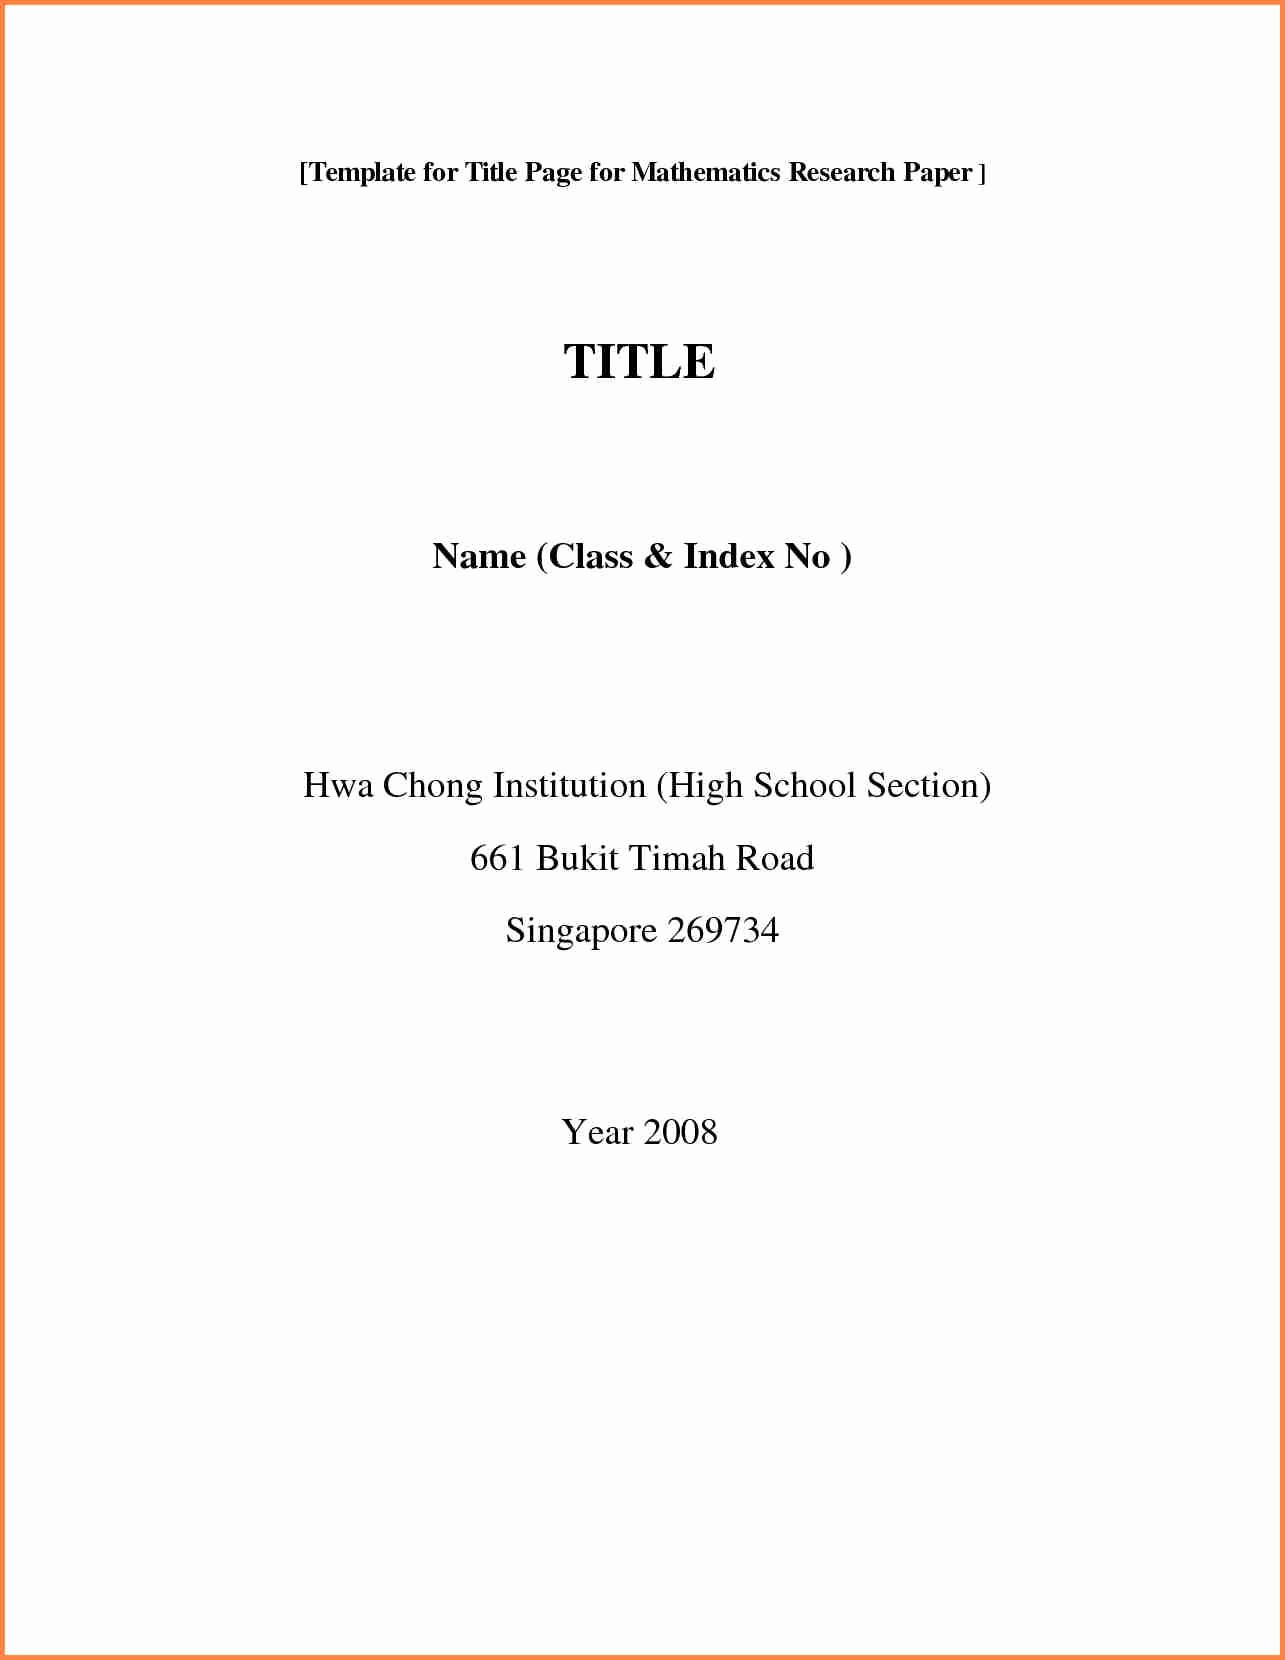 Research Paper Title Page Template Luxury 15 Research Paper Cover Page